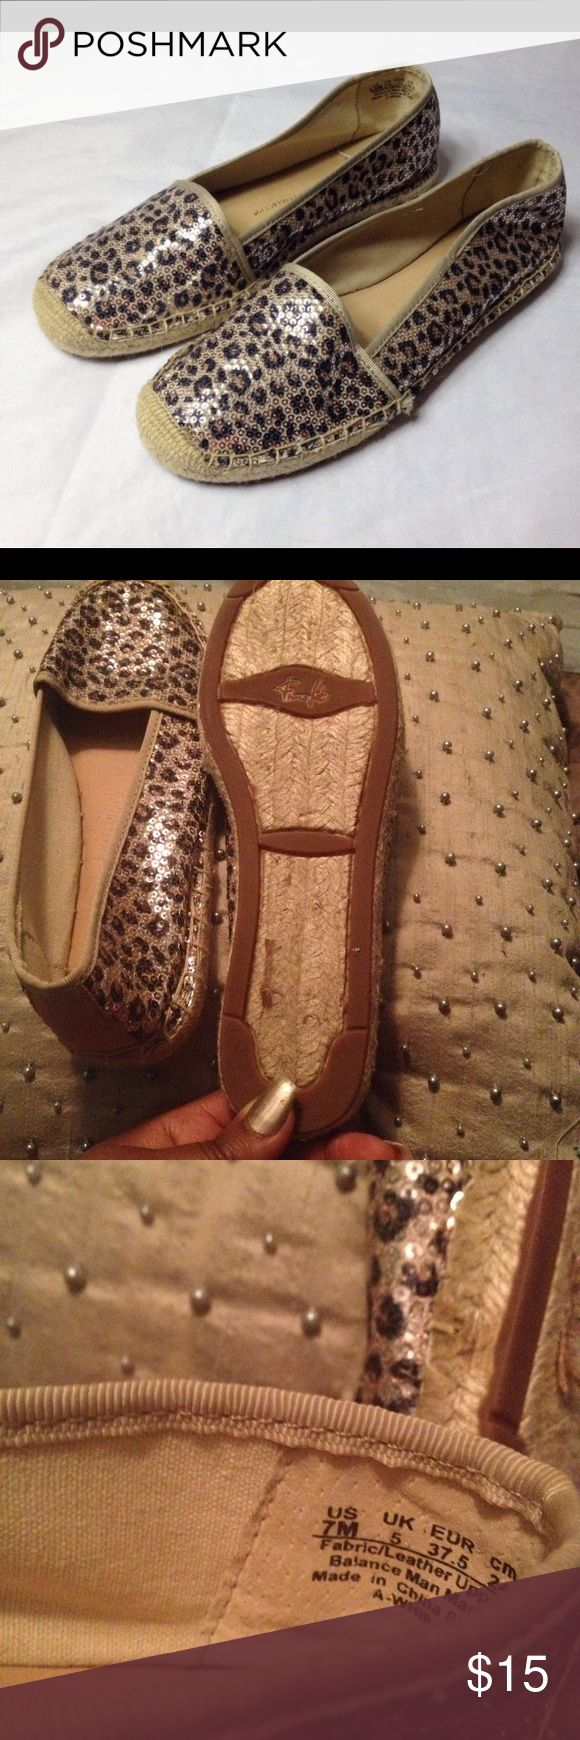 Franco Sarto espadrilles Franco Sarto artist collection sequin animal print espadrilles. Minor wear on bottom. Very good condition Franco Sarto Shoes Espadrilles